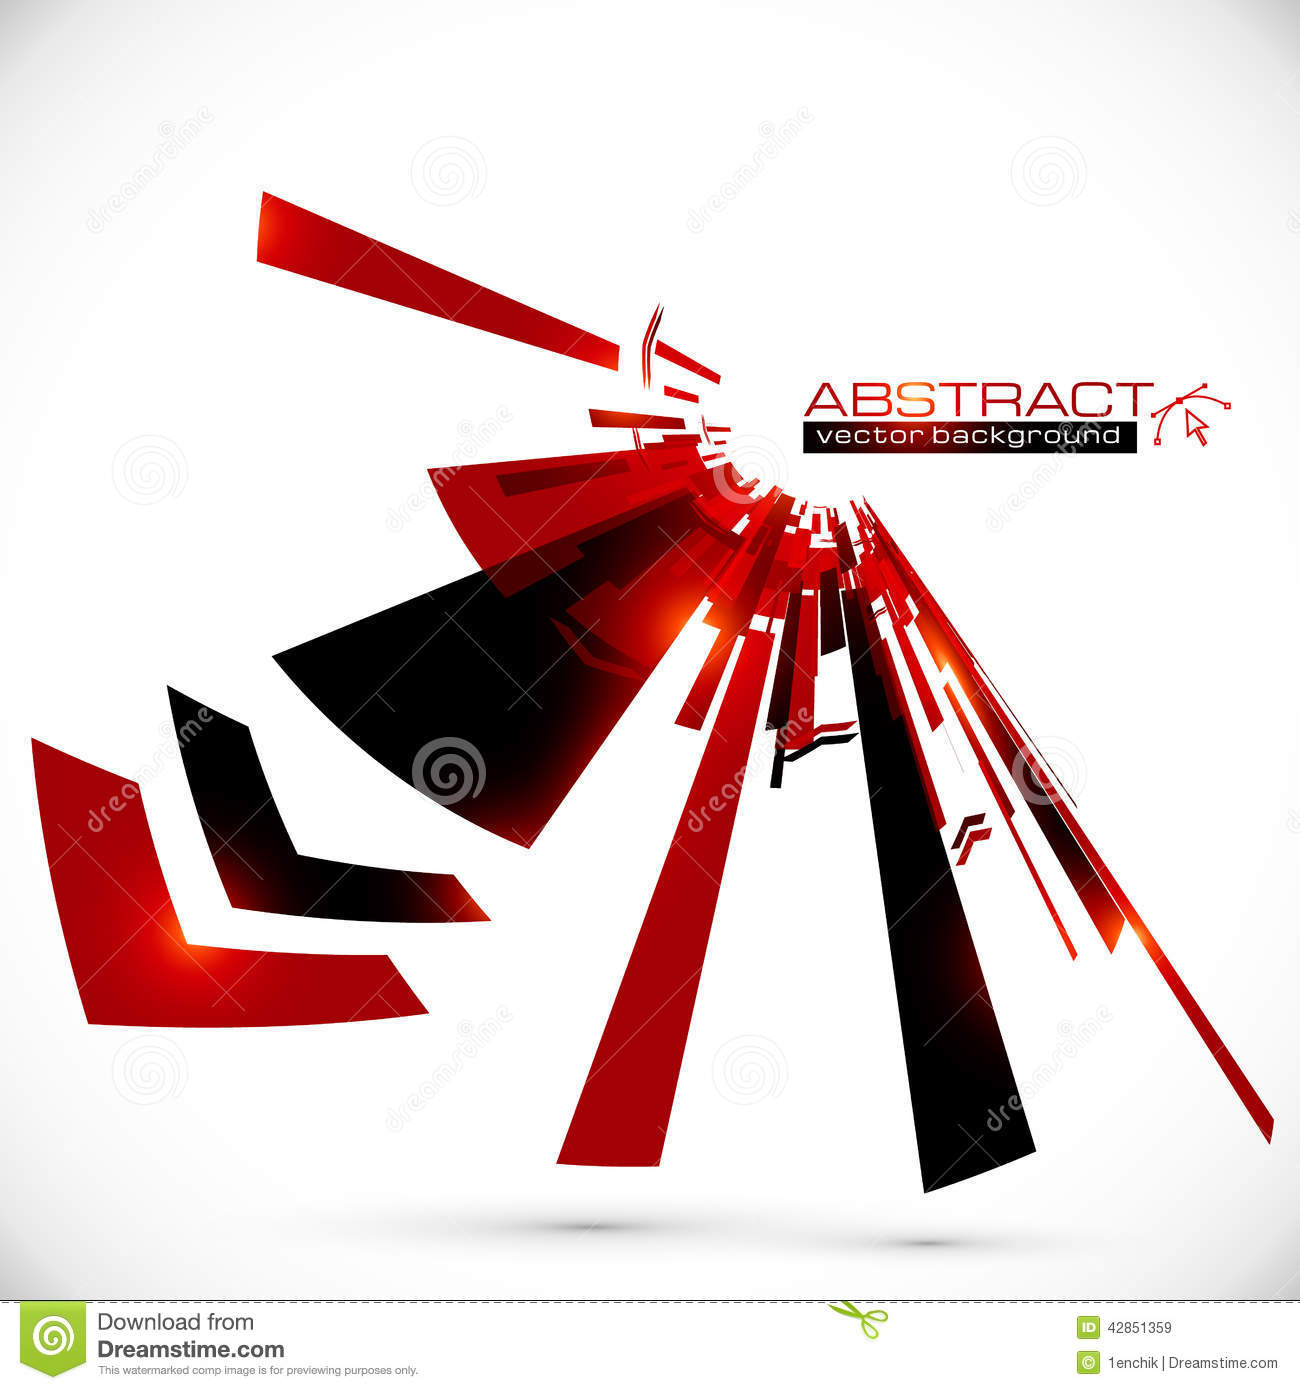 Abstract red and black shining lines background